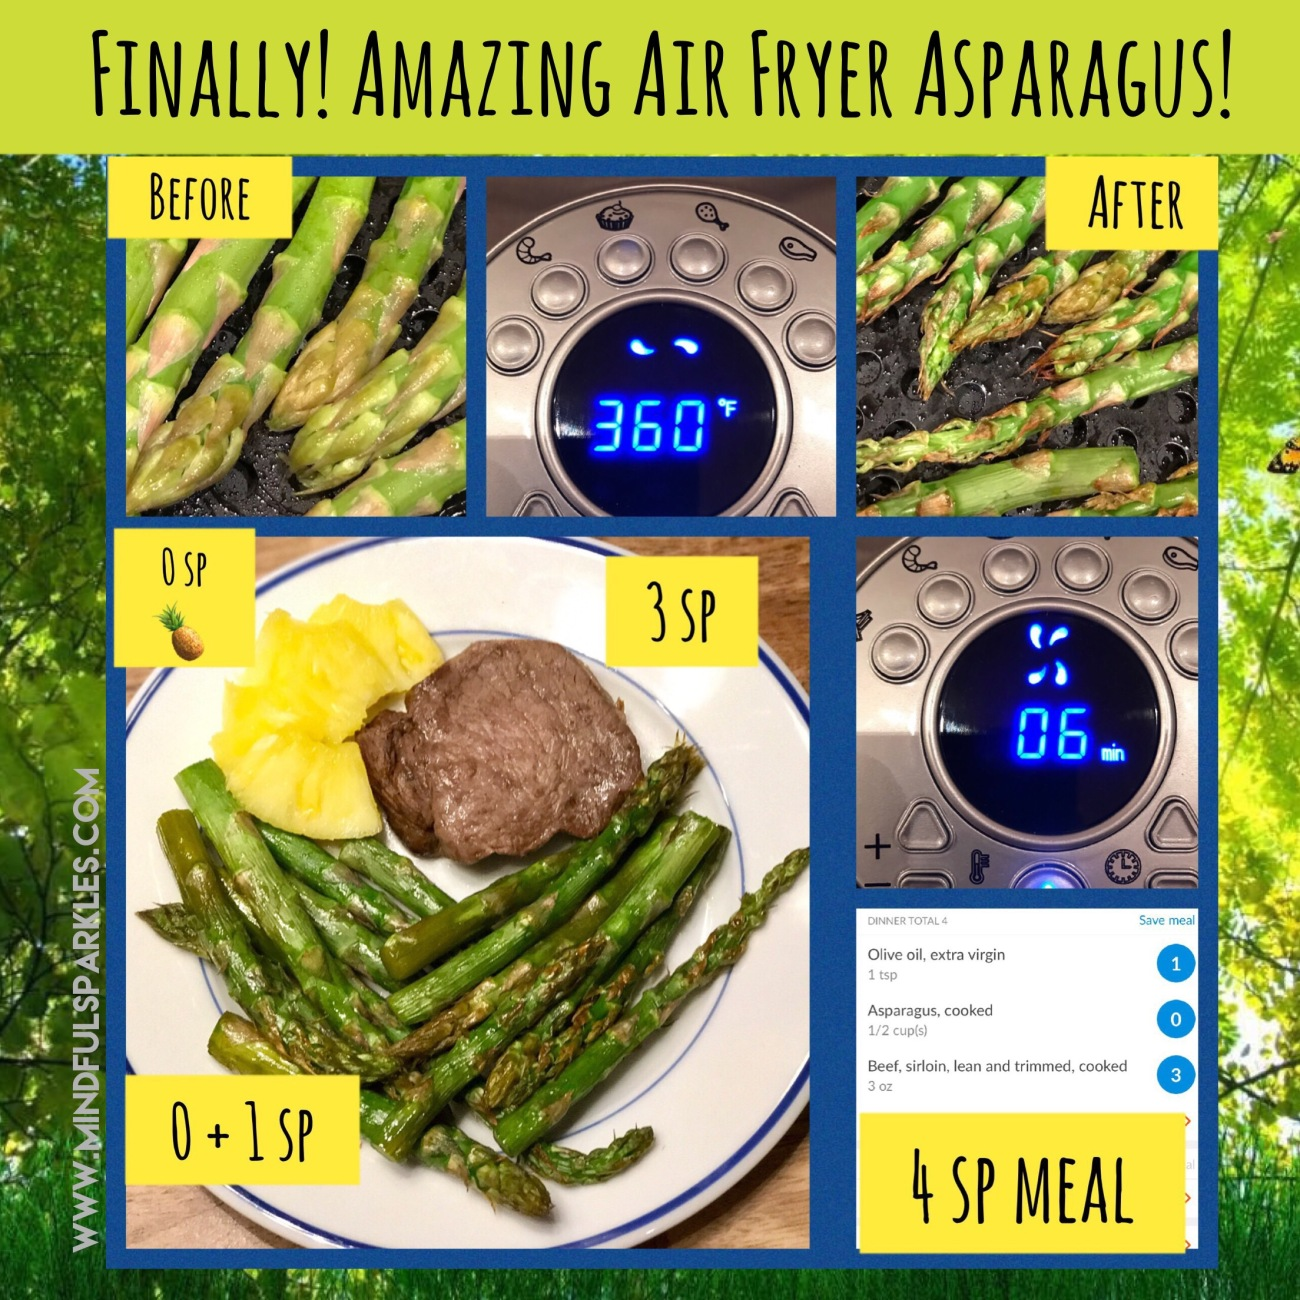 Amazing Air Fryer Asparagus